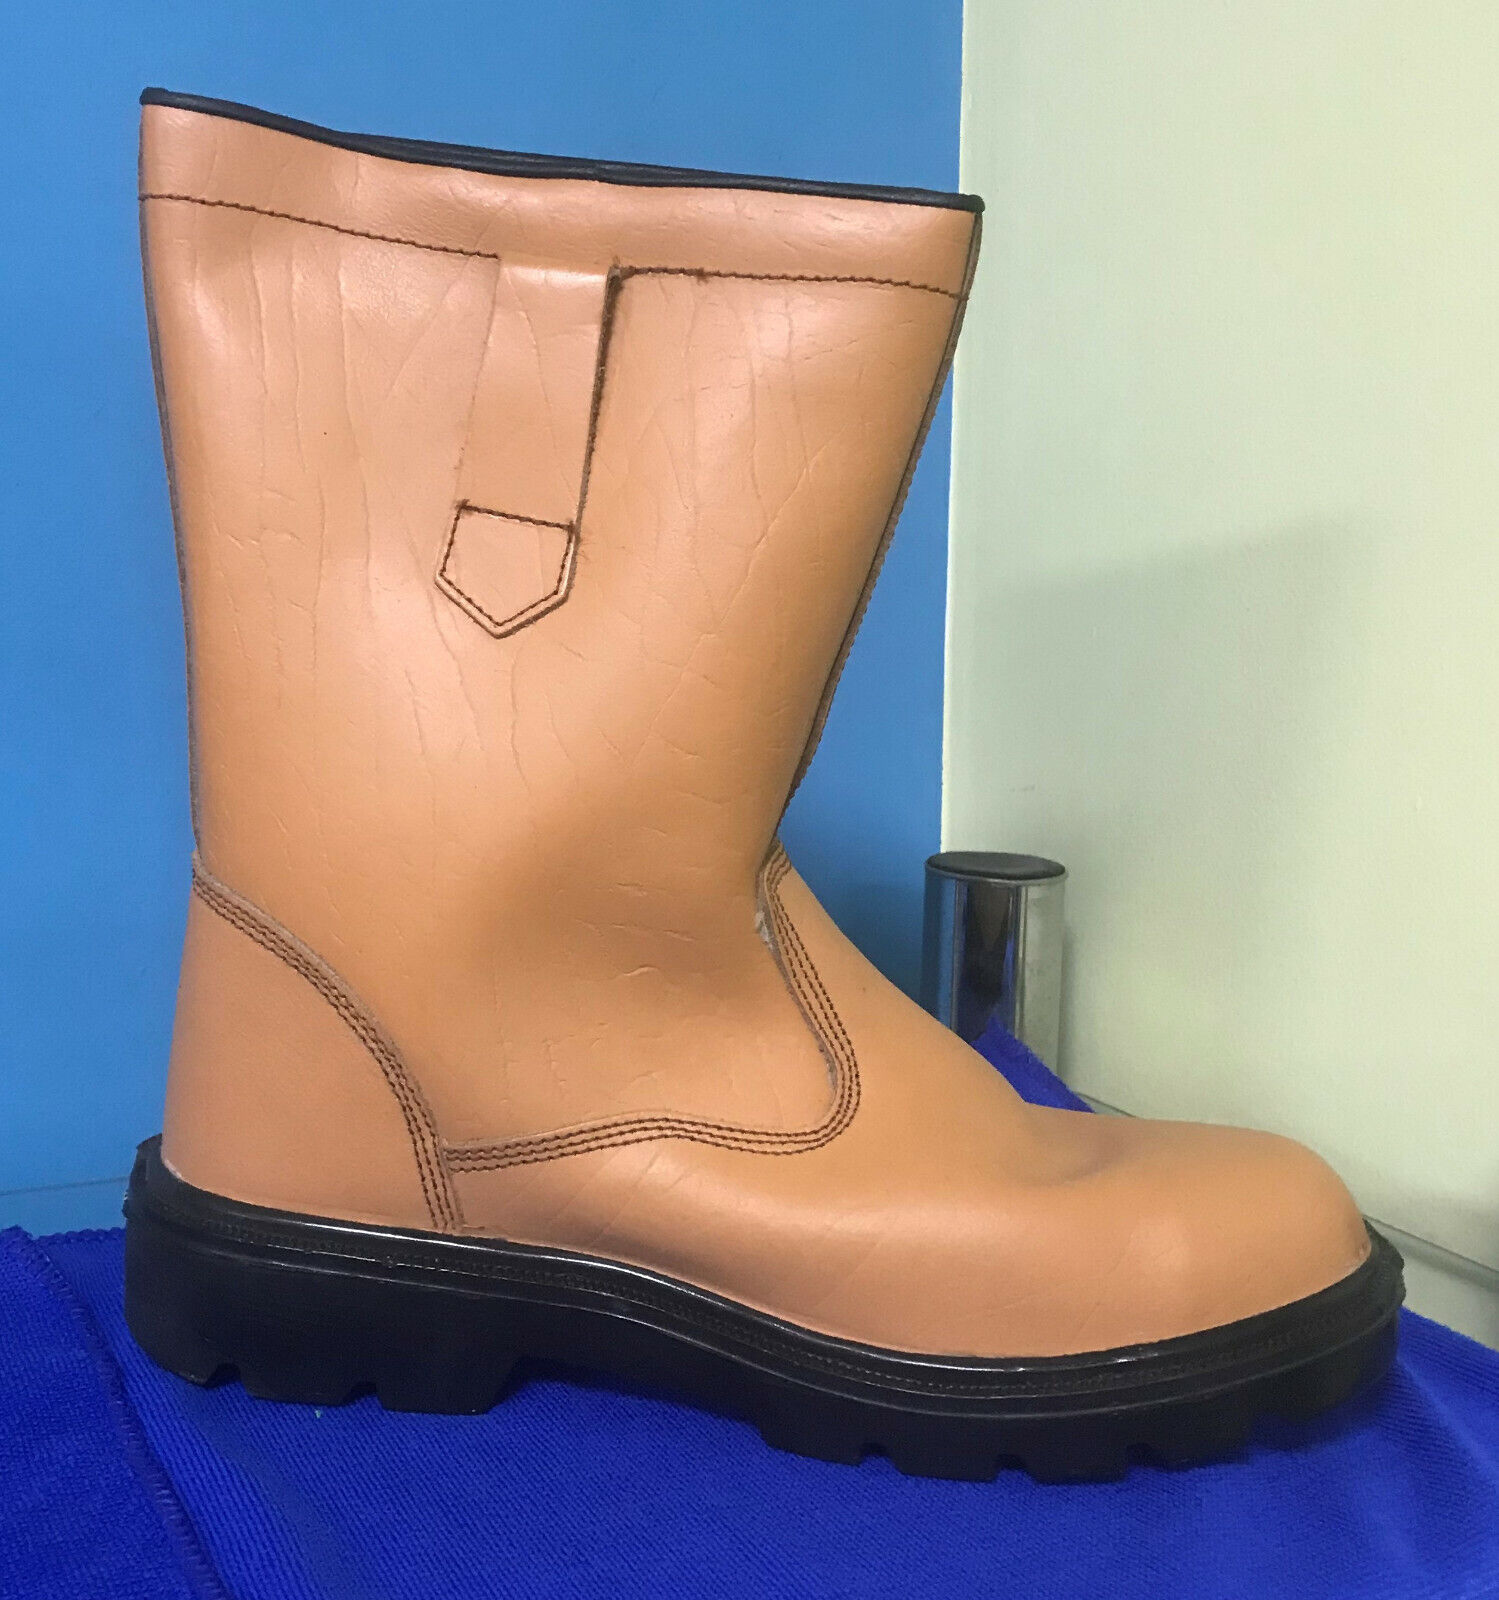 Toe Guard Rigger Safety Boots Steel Toe Cap Pull On Fur Lined Work UK SIZE 8